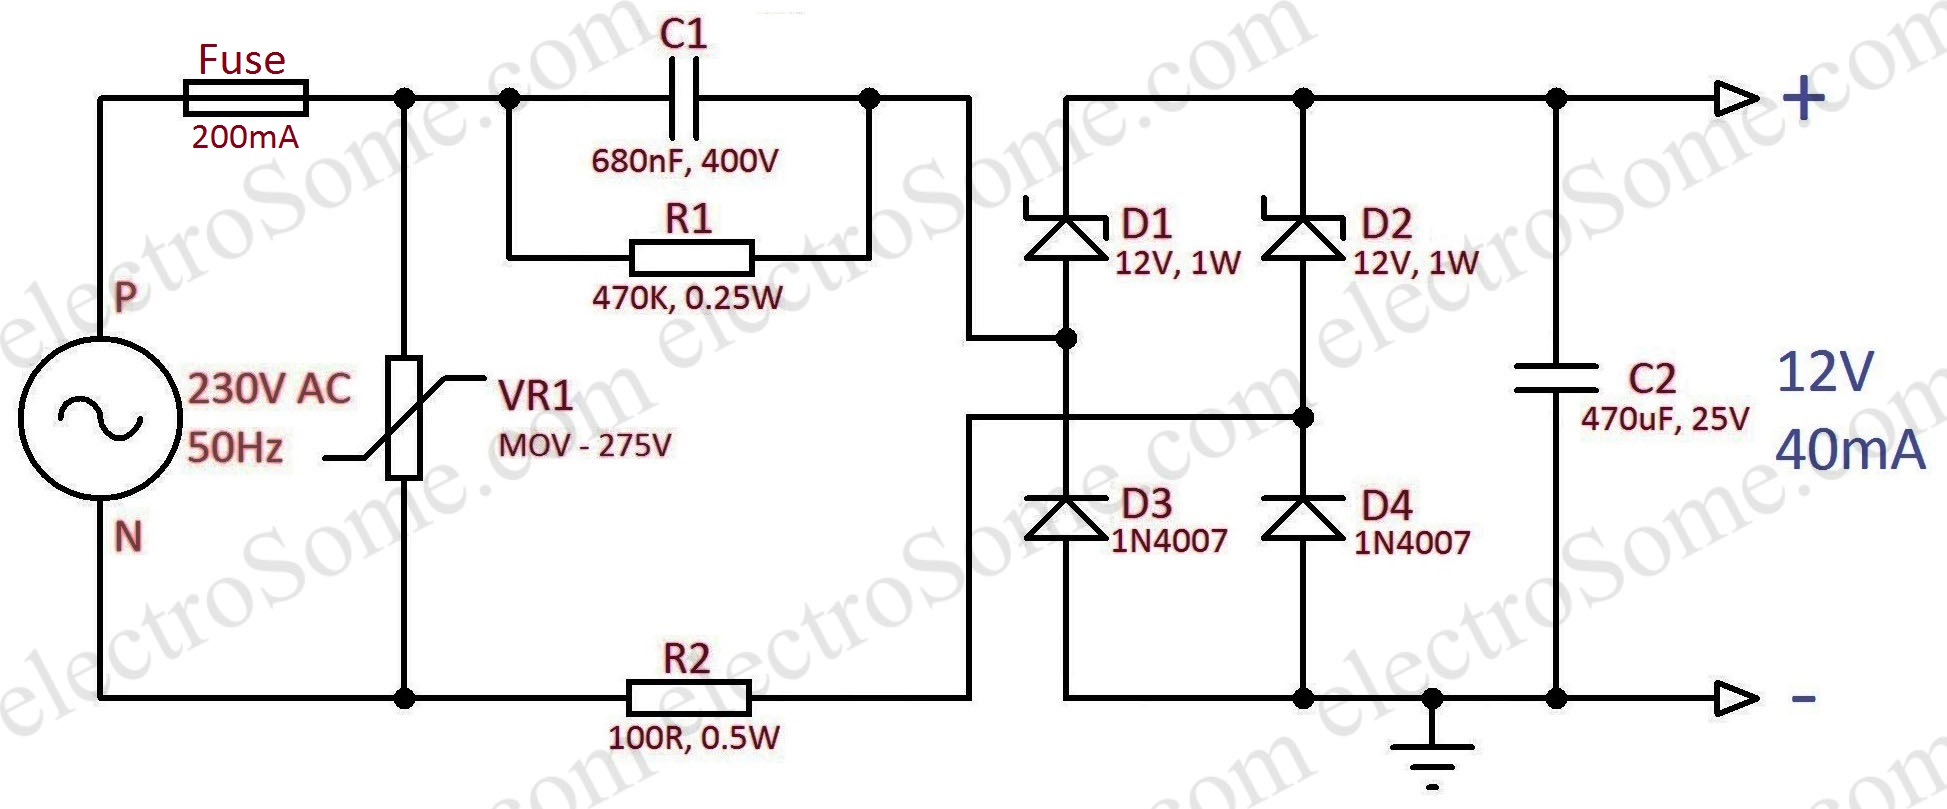 Transformerless Capacitor Power Supply Design K Map Circuit Diagram 12v 40ma